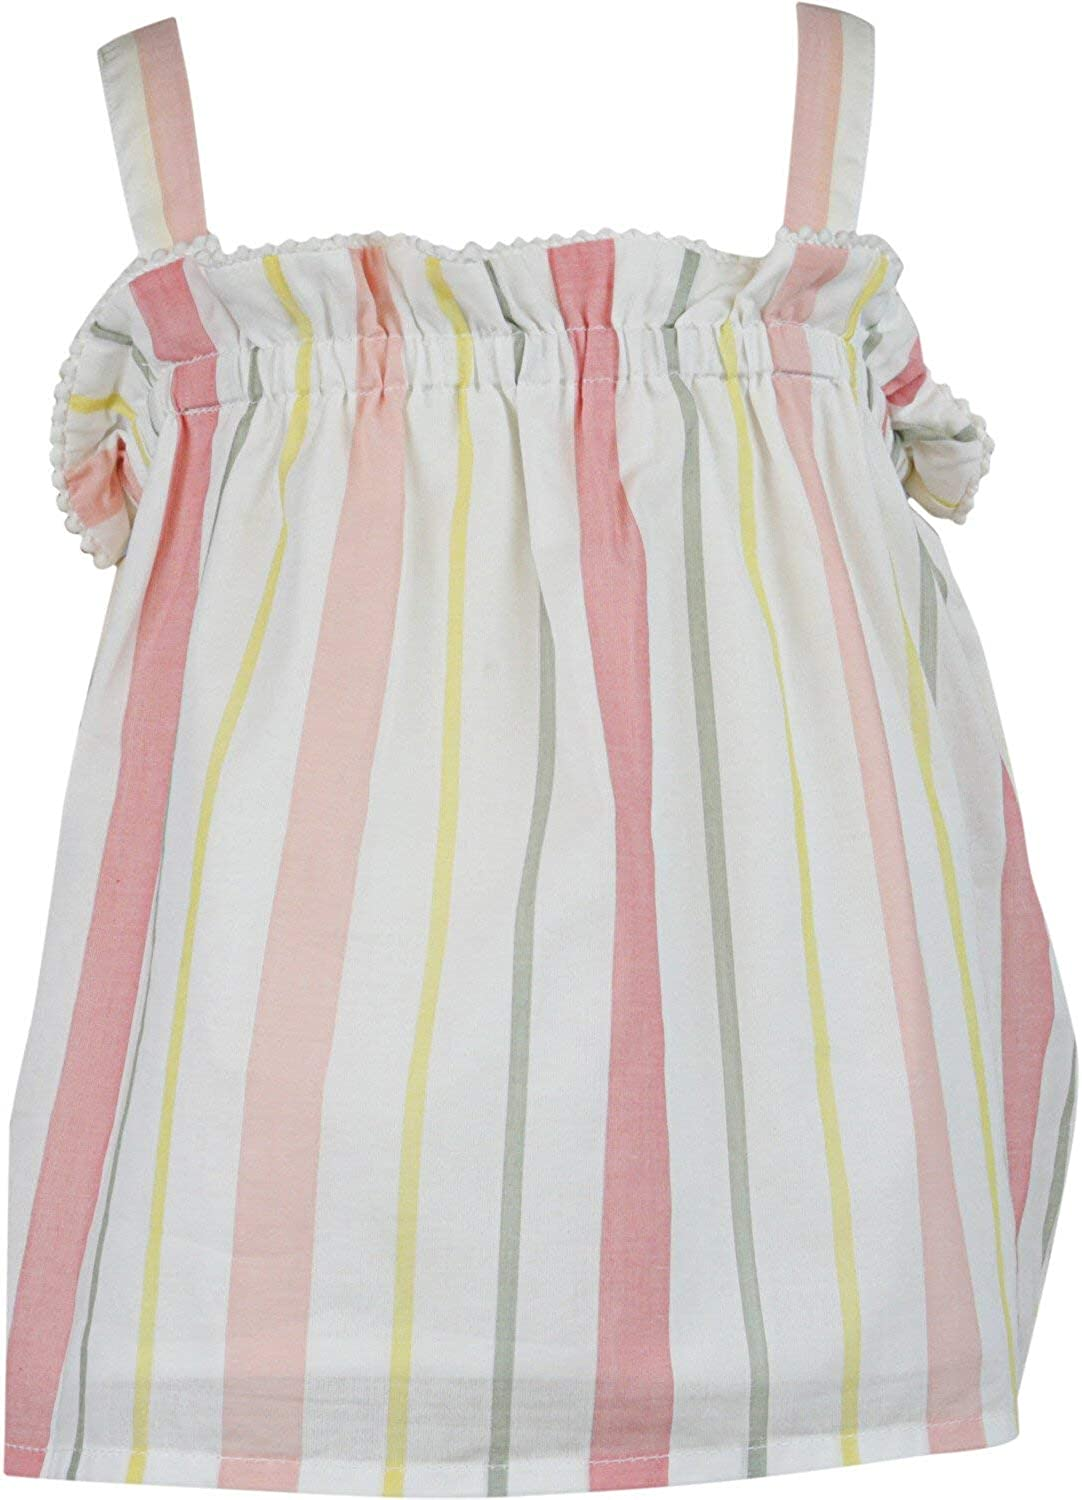 New Orleans Mall Janie and Elegant Jack White Multicolor Striped Pom Top 12-1 Trim Tank -